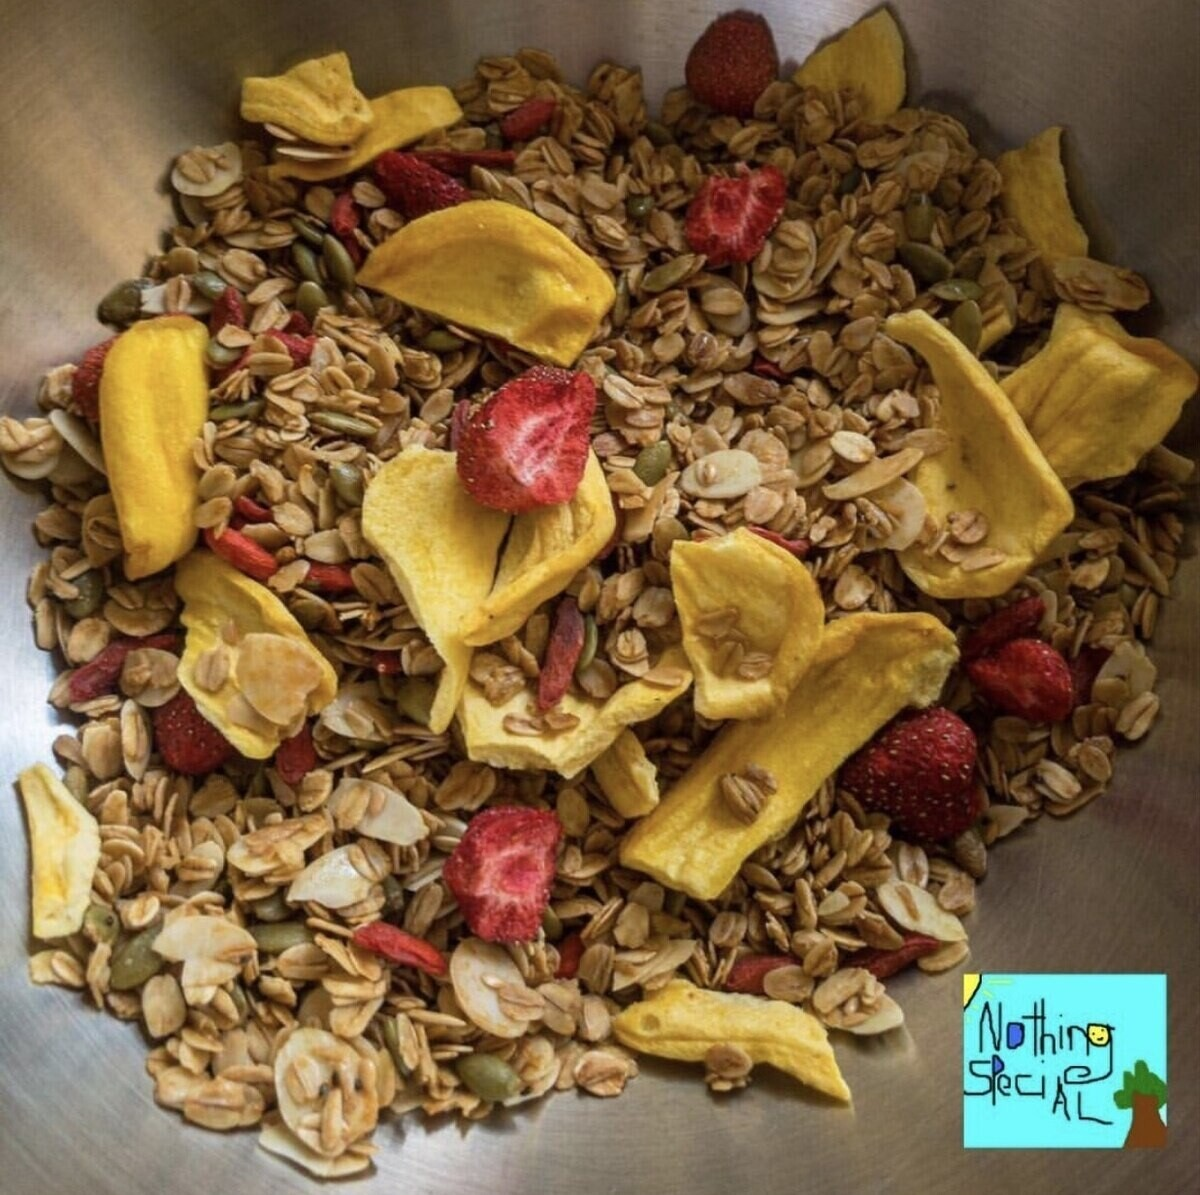 A bowl of granola with bananas and strawberries